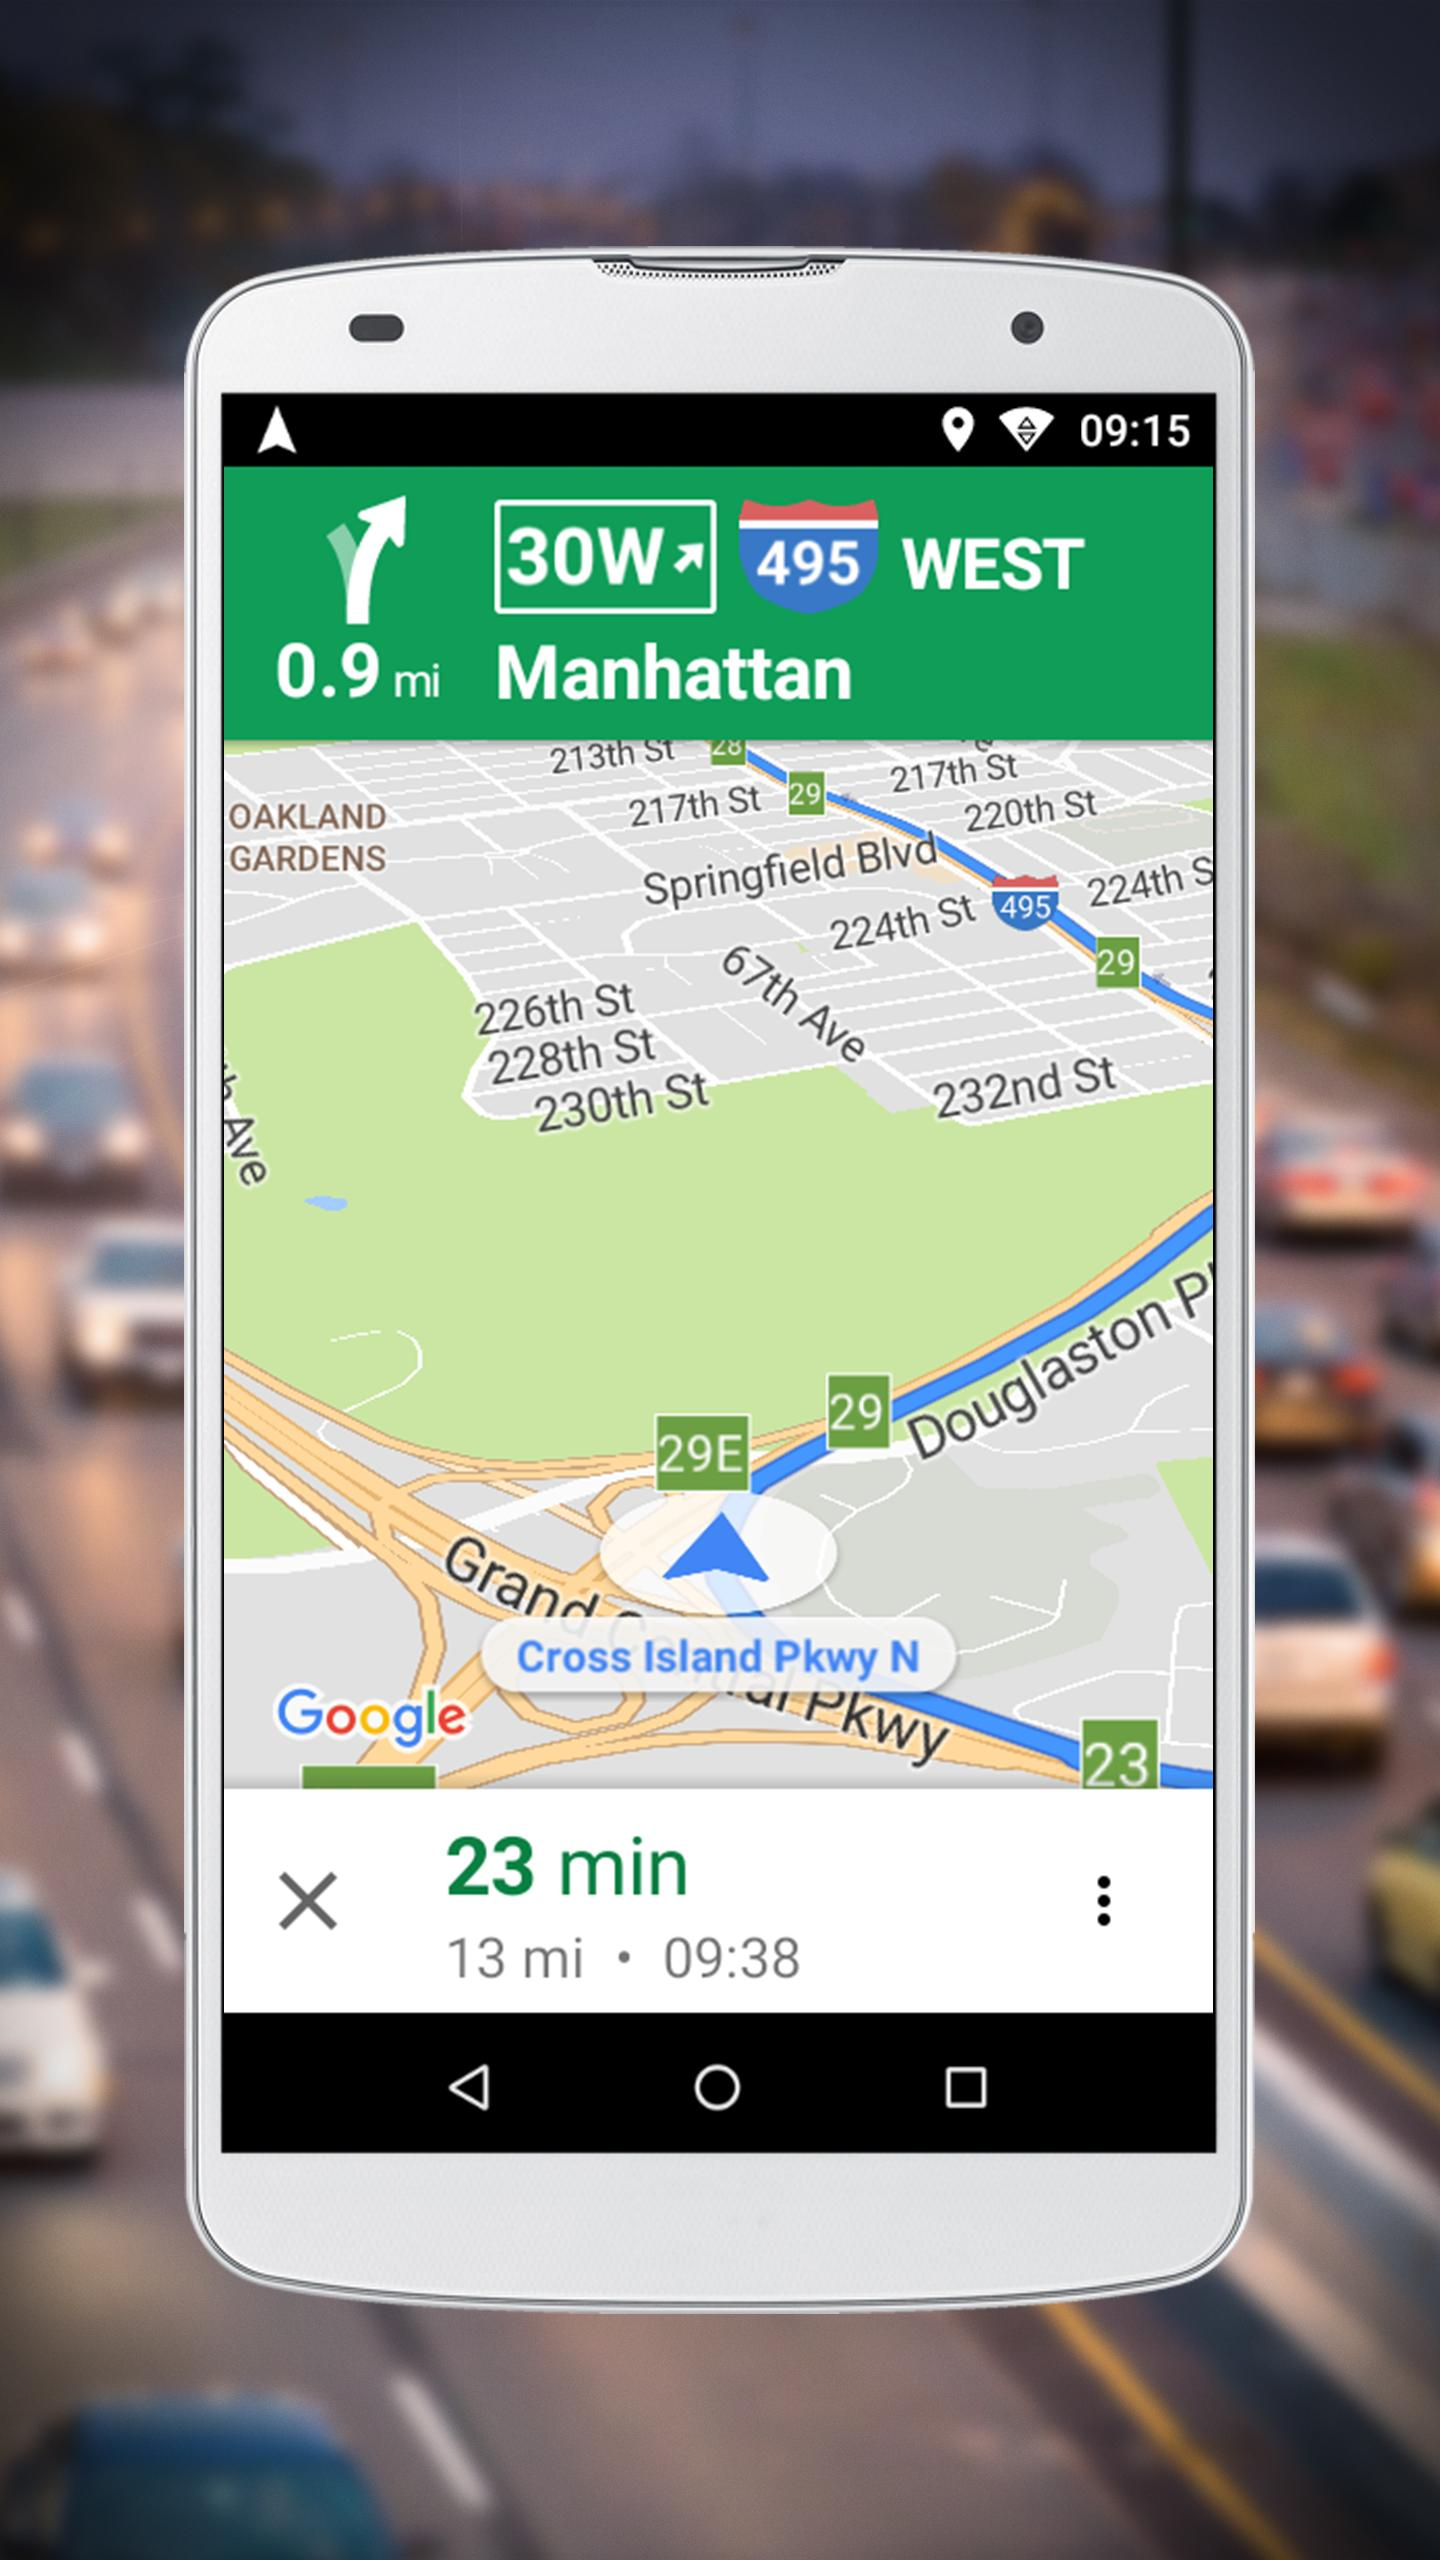 Navigation for Google Maps Go for Android - APK Download on google chrome, google goggles, go to mail, google search, go to settings, go to internet, go to ebay, yahoo! maps, google earth, go to amazon, google docs, web mapping, google translate, go to home, go to netflix, google moon, google street view, go to facebook, satellite map images with missing or unclear data, google latitude, bing maps, route planning software, google mars, google sky, google voice, go to email, google map maker,